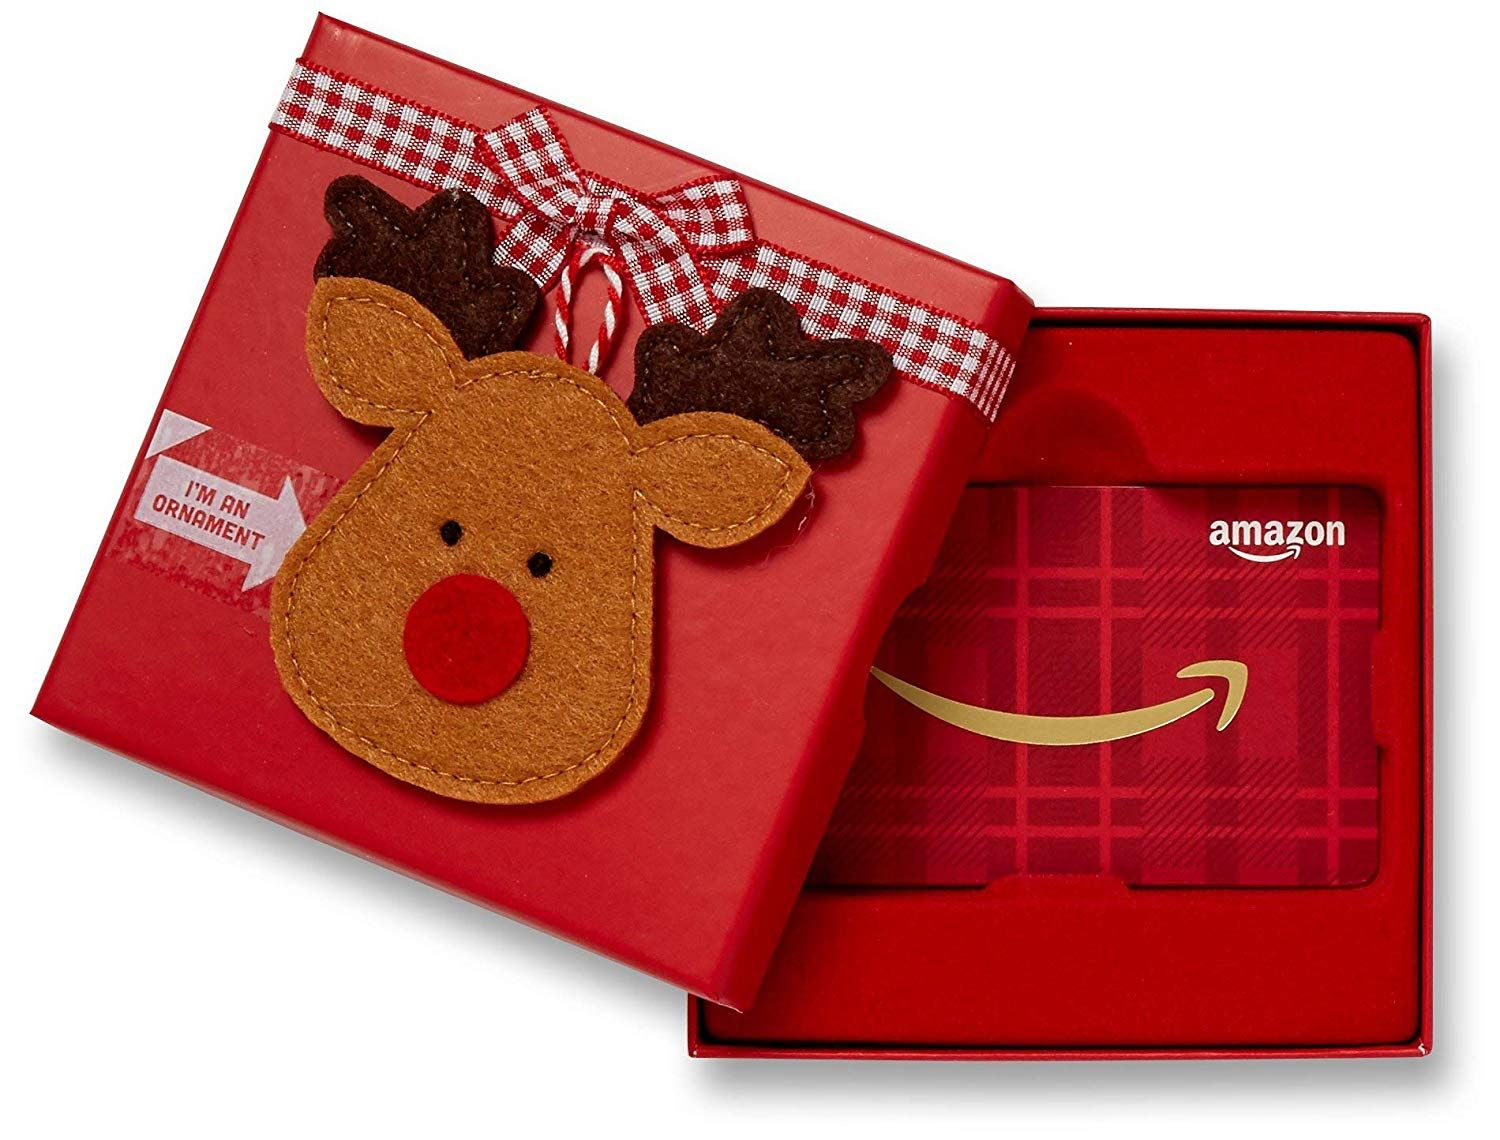 Gift card in a reindeer ornament